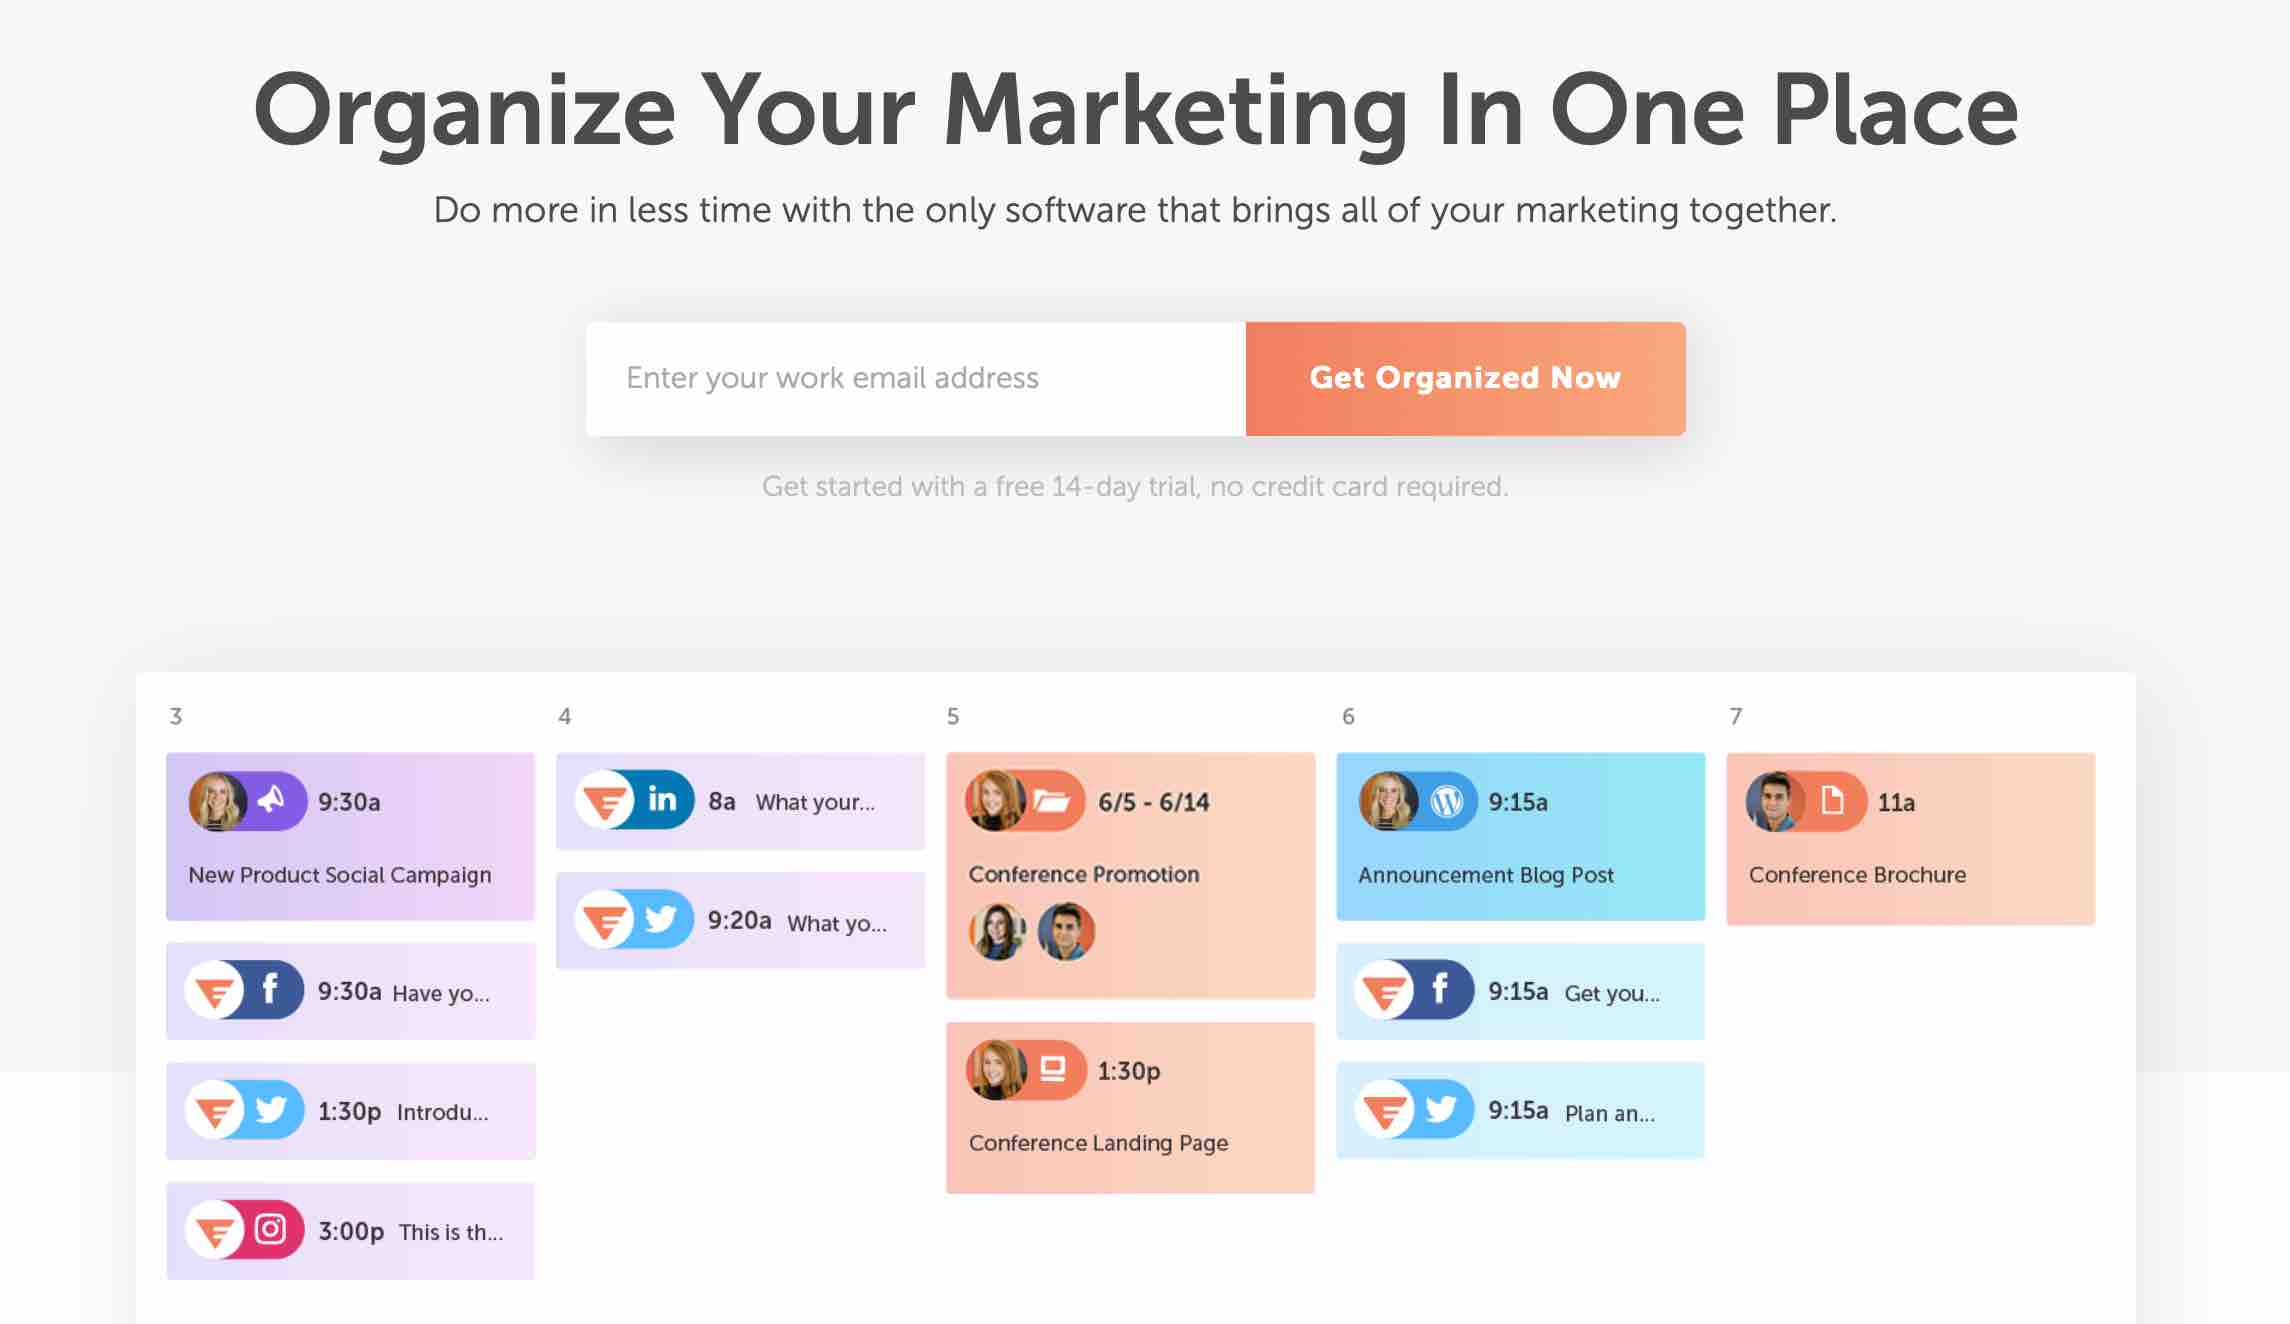 Organize Your Marketing In One Place